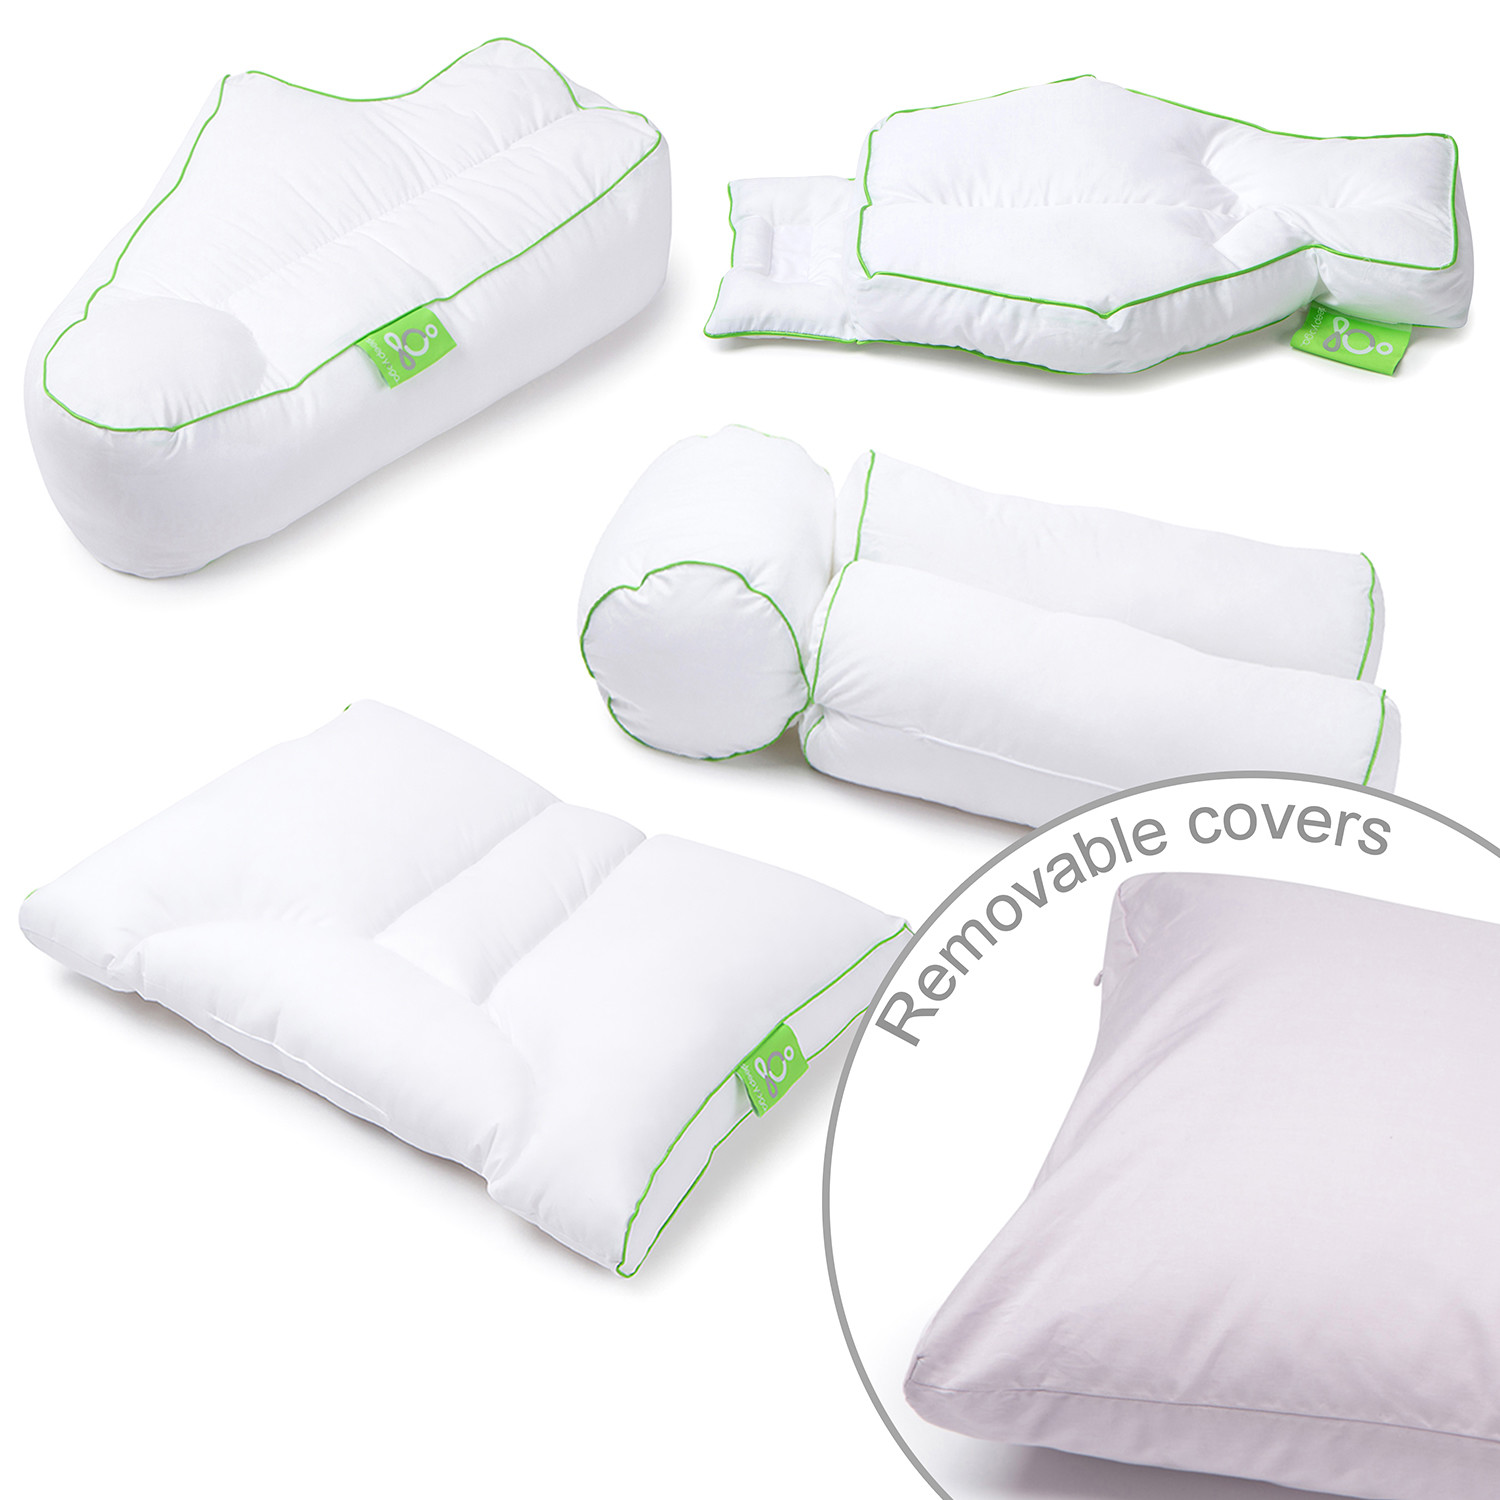 Complete Sleeper Pillow Sleep Yoga Posture Pillow Collection Set Of 4 43 Pillow